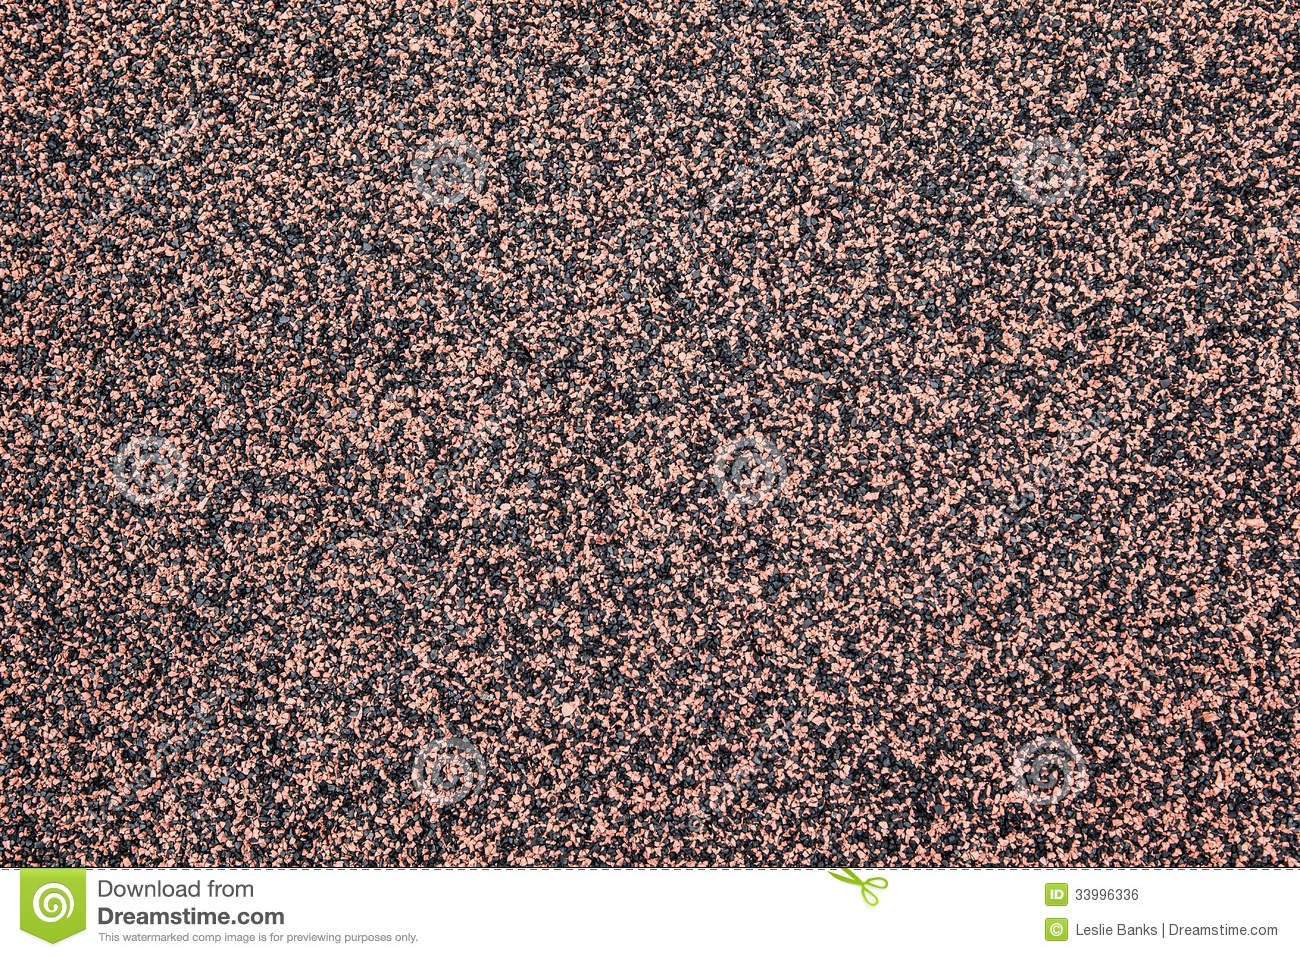 Download Rubber Floor Texture Stock Photo Image Of Detail Speckled